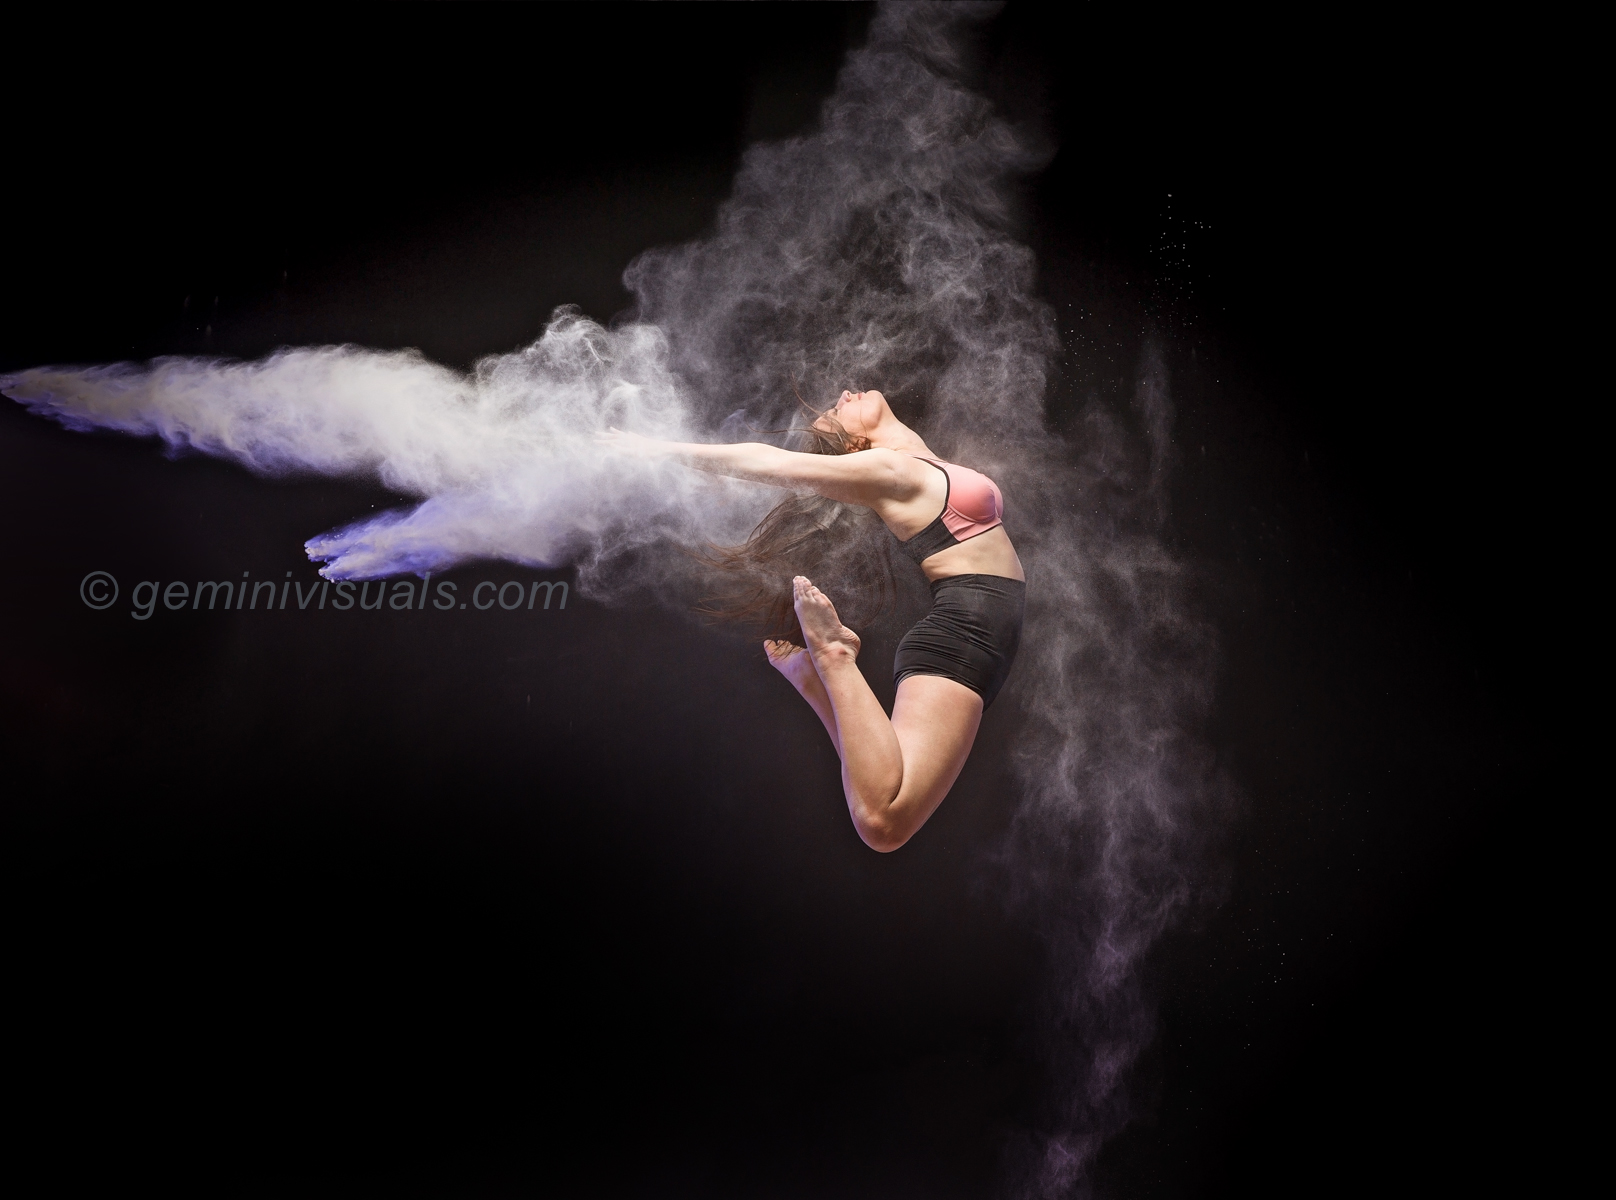 Gemini visuals creative dance photography, dance photos, dance photos flour